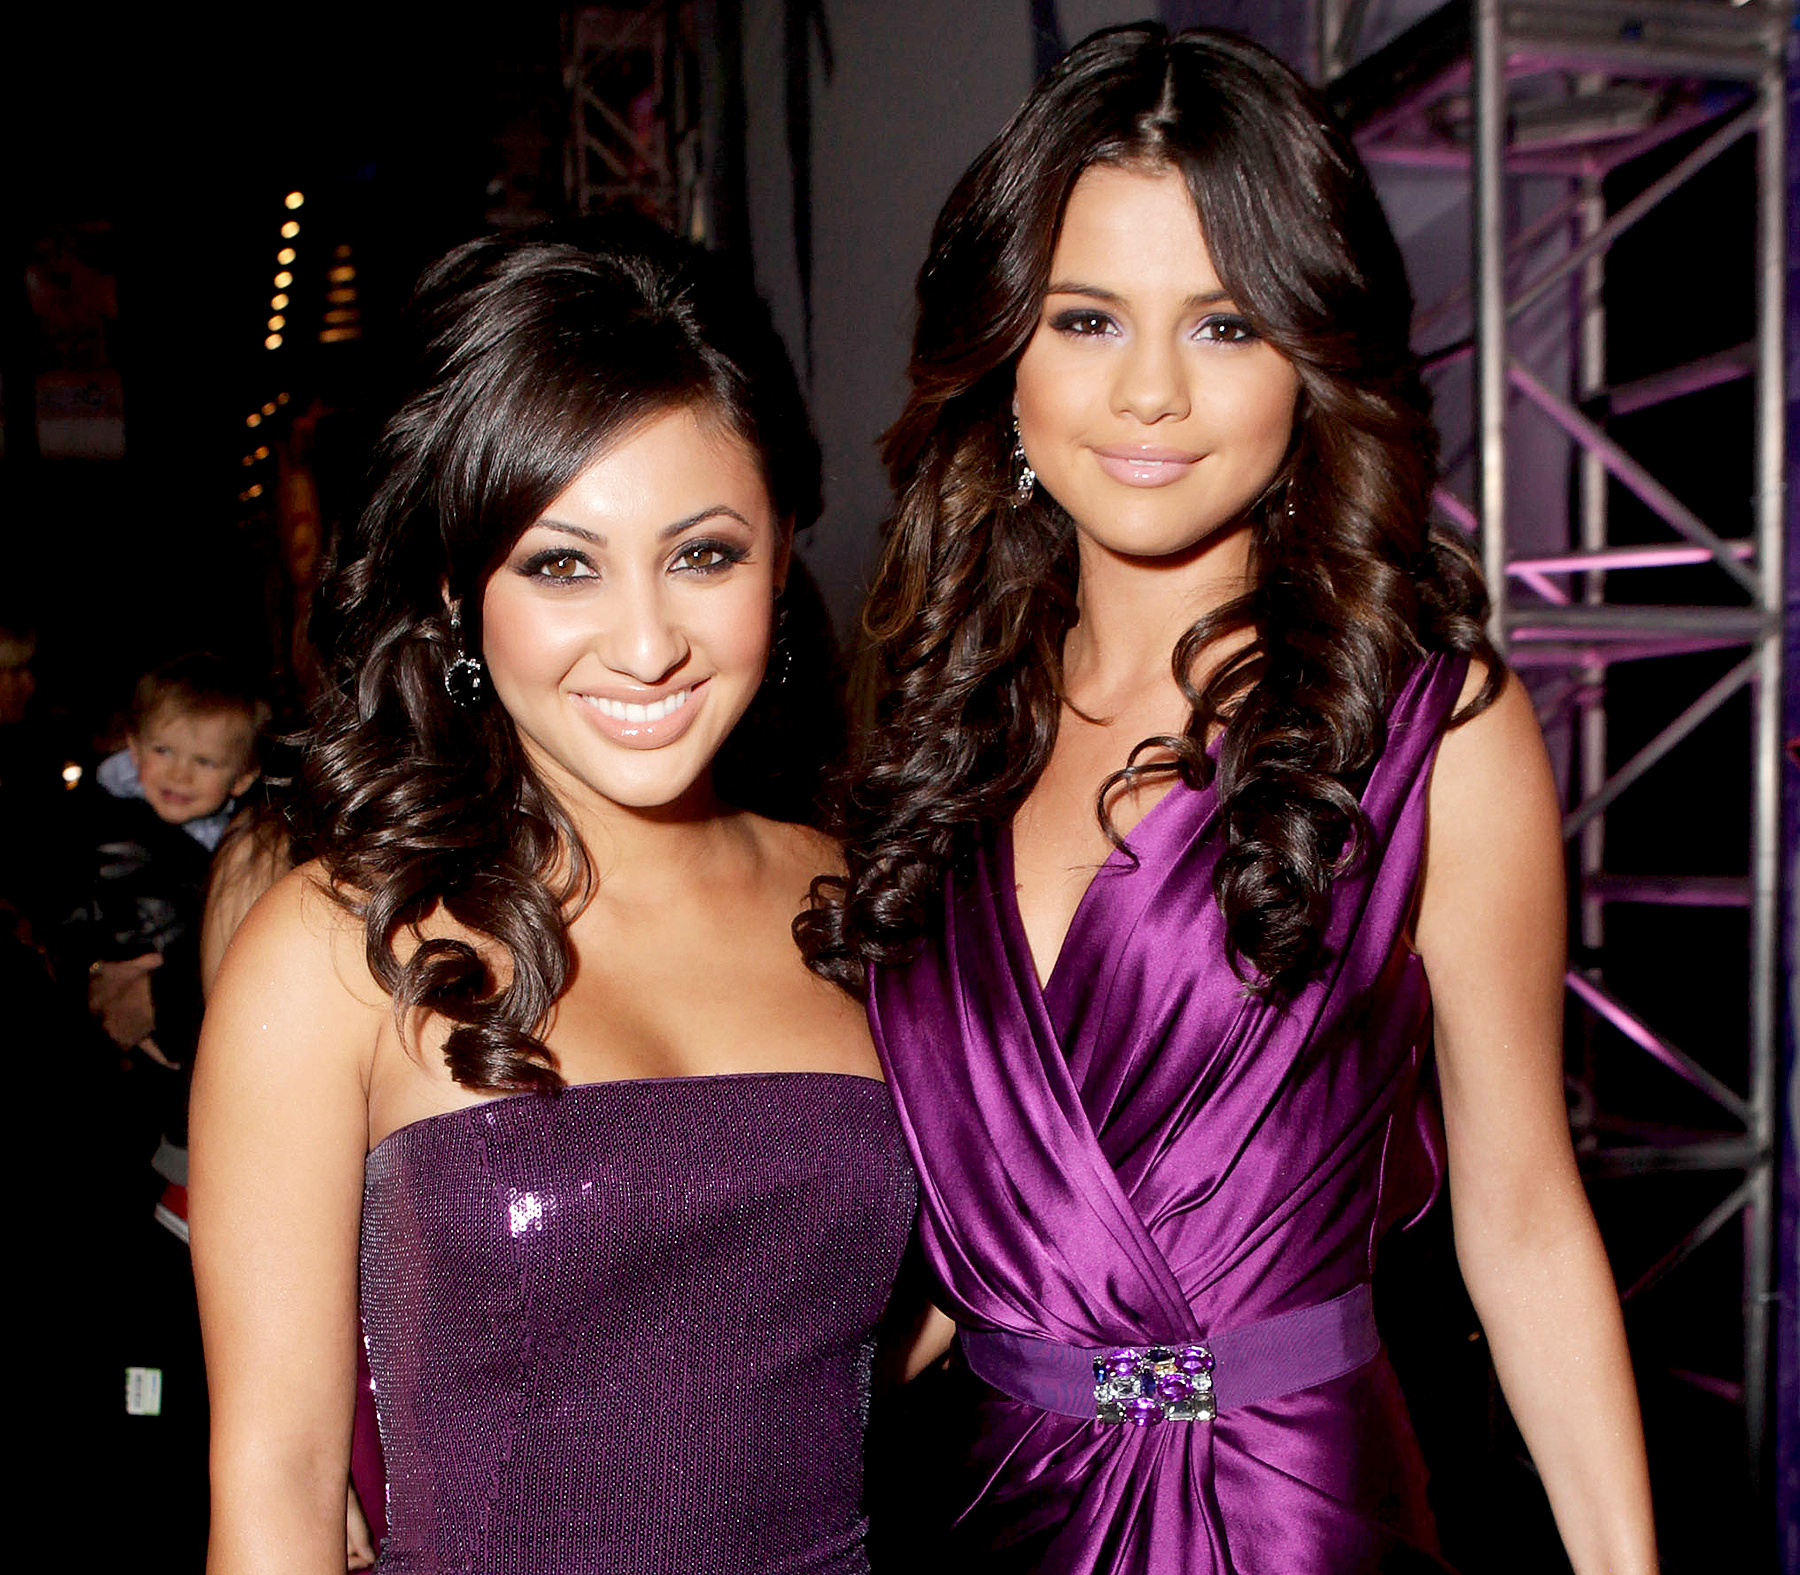 """Francia Raisa and Selena Gomez arrive at the """"Justin Bieber: Never Say Never"""" Los Angeles Premiere held at Nokia Theatre L.A. Live on February 8, 2011 in Los Angeles, California."""